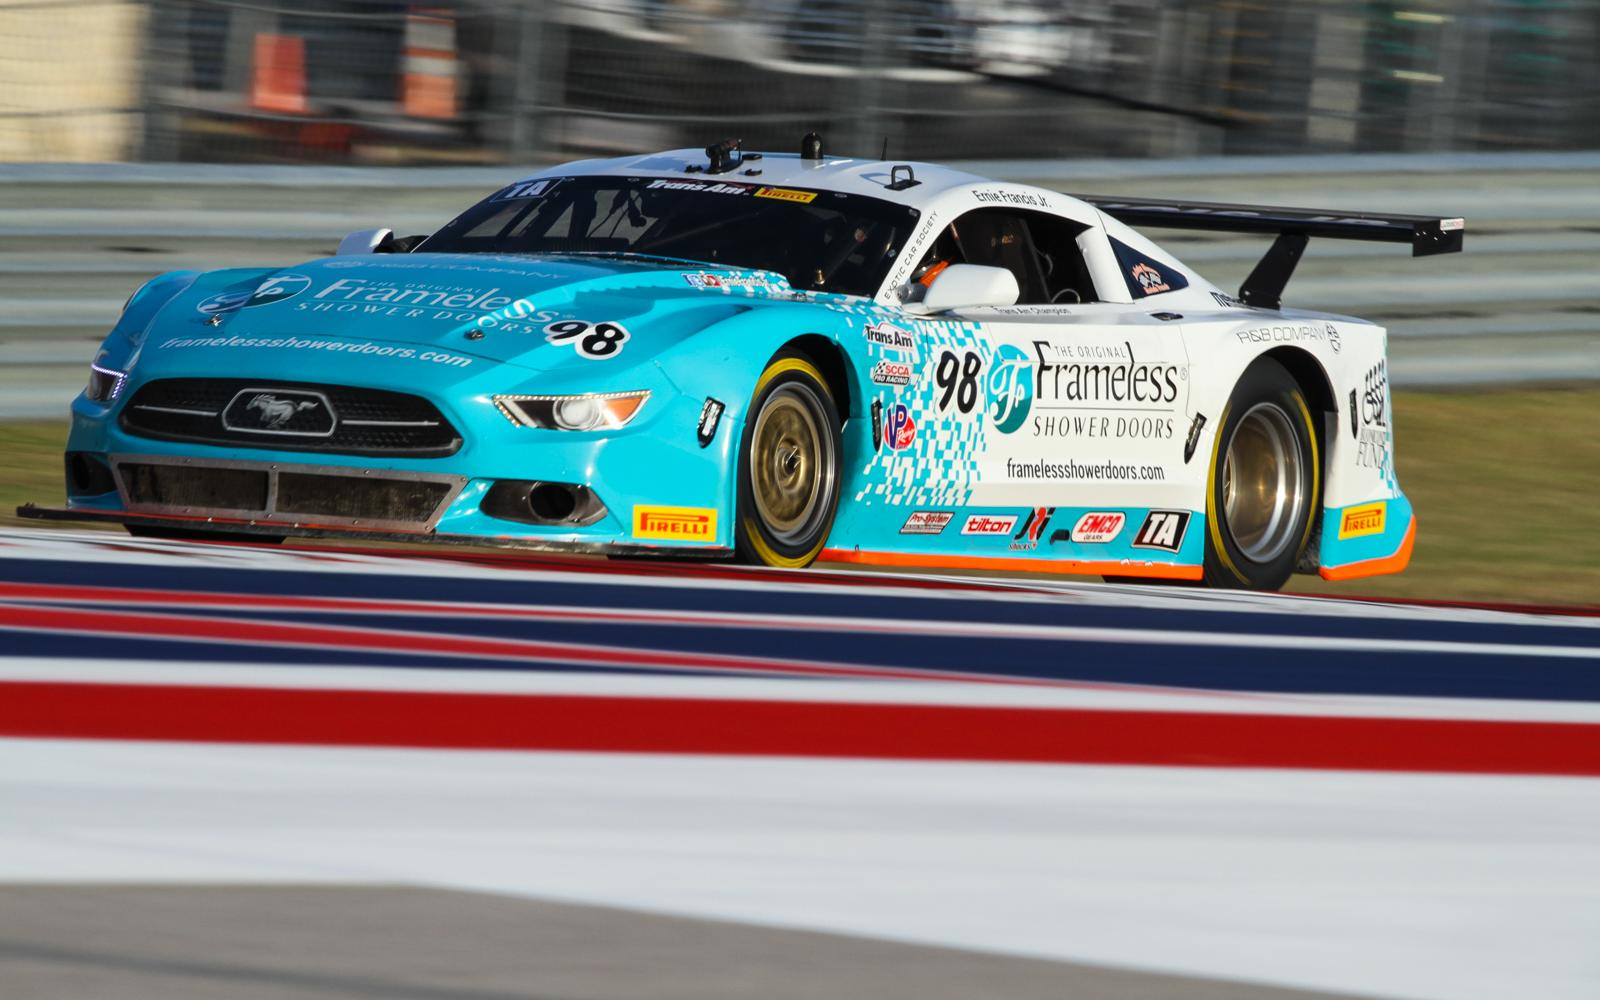 Ernie Francis, Jr., and Shane Lewis grab Trans Am poles at COTA